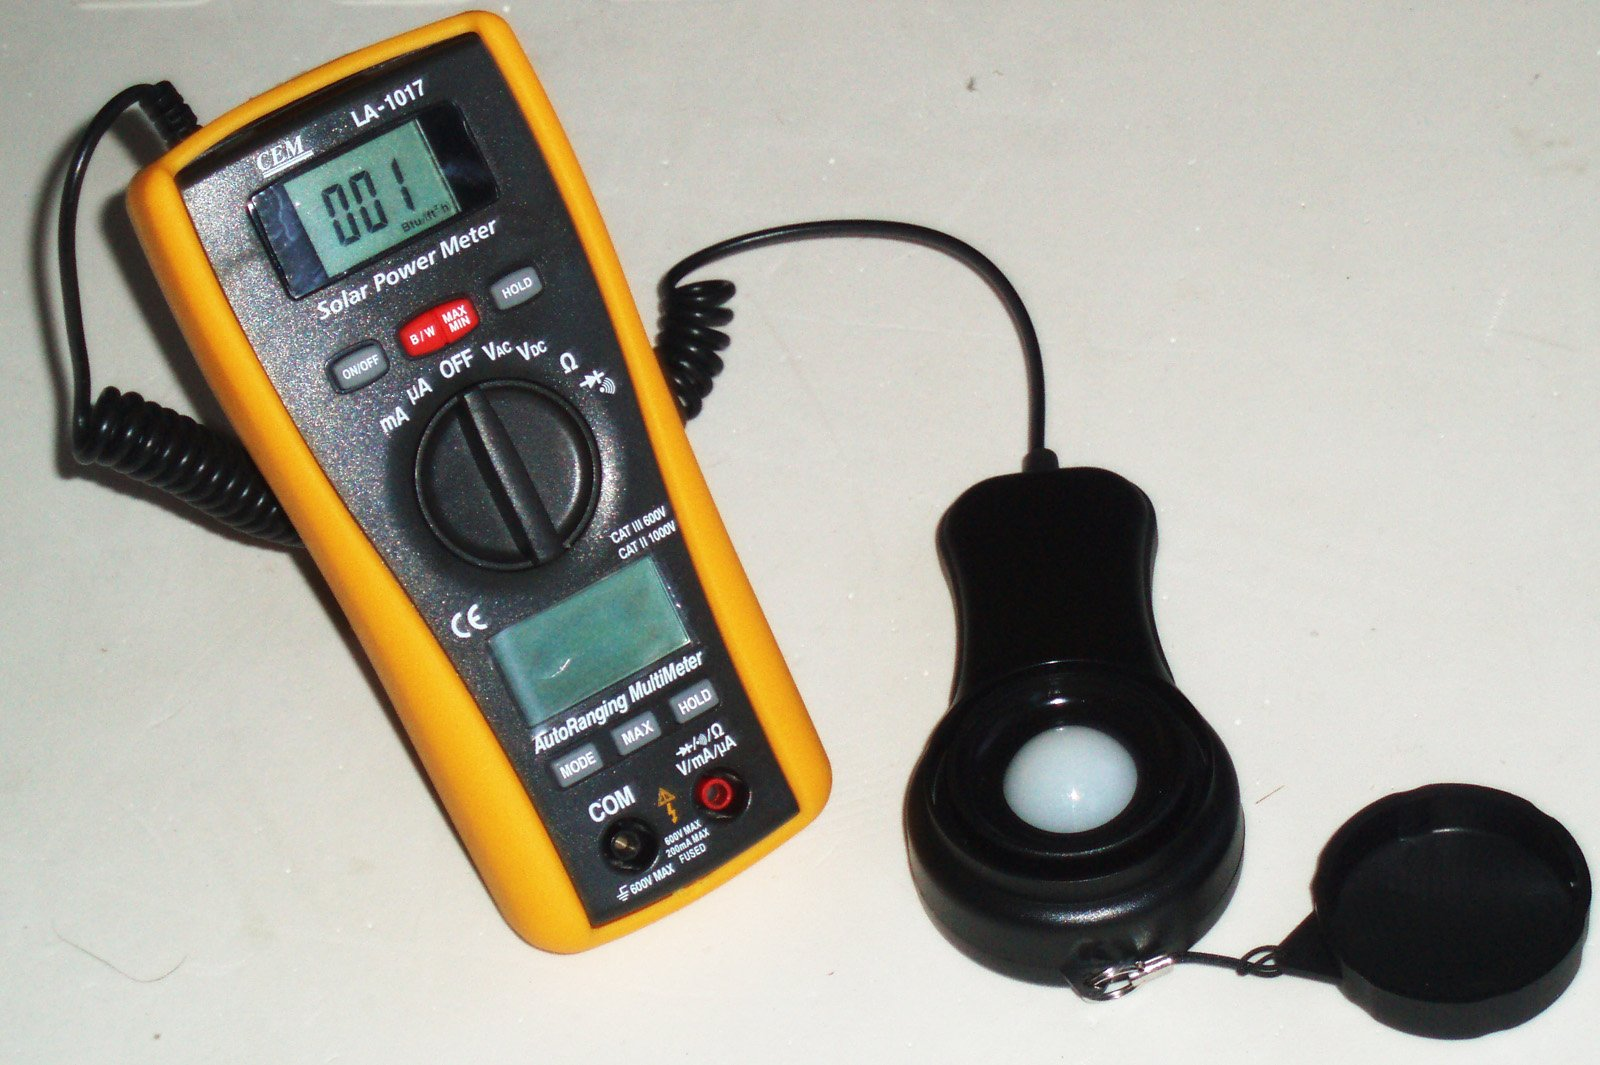 LA-1017 Sun Power Solar Energy Sunlight Meter with DMM Digital Multimeter by Ruby Electronics (Image #3)